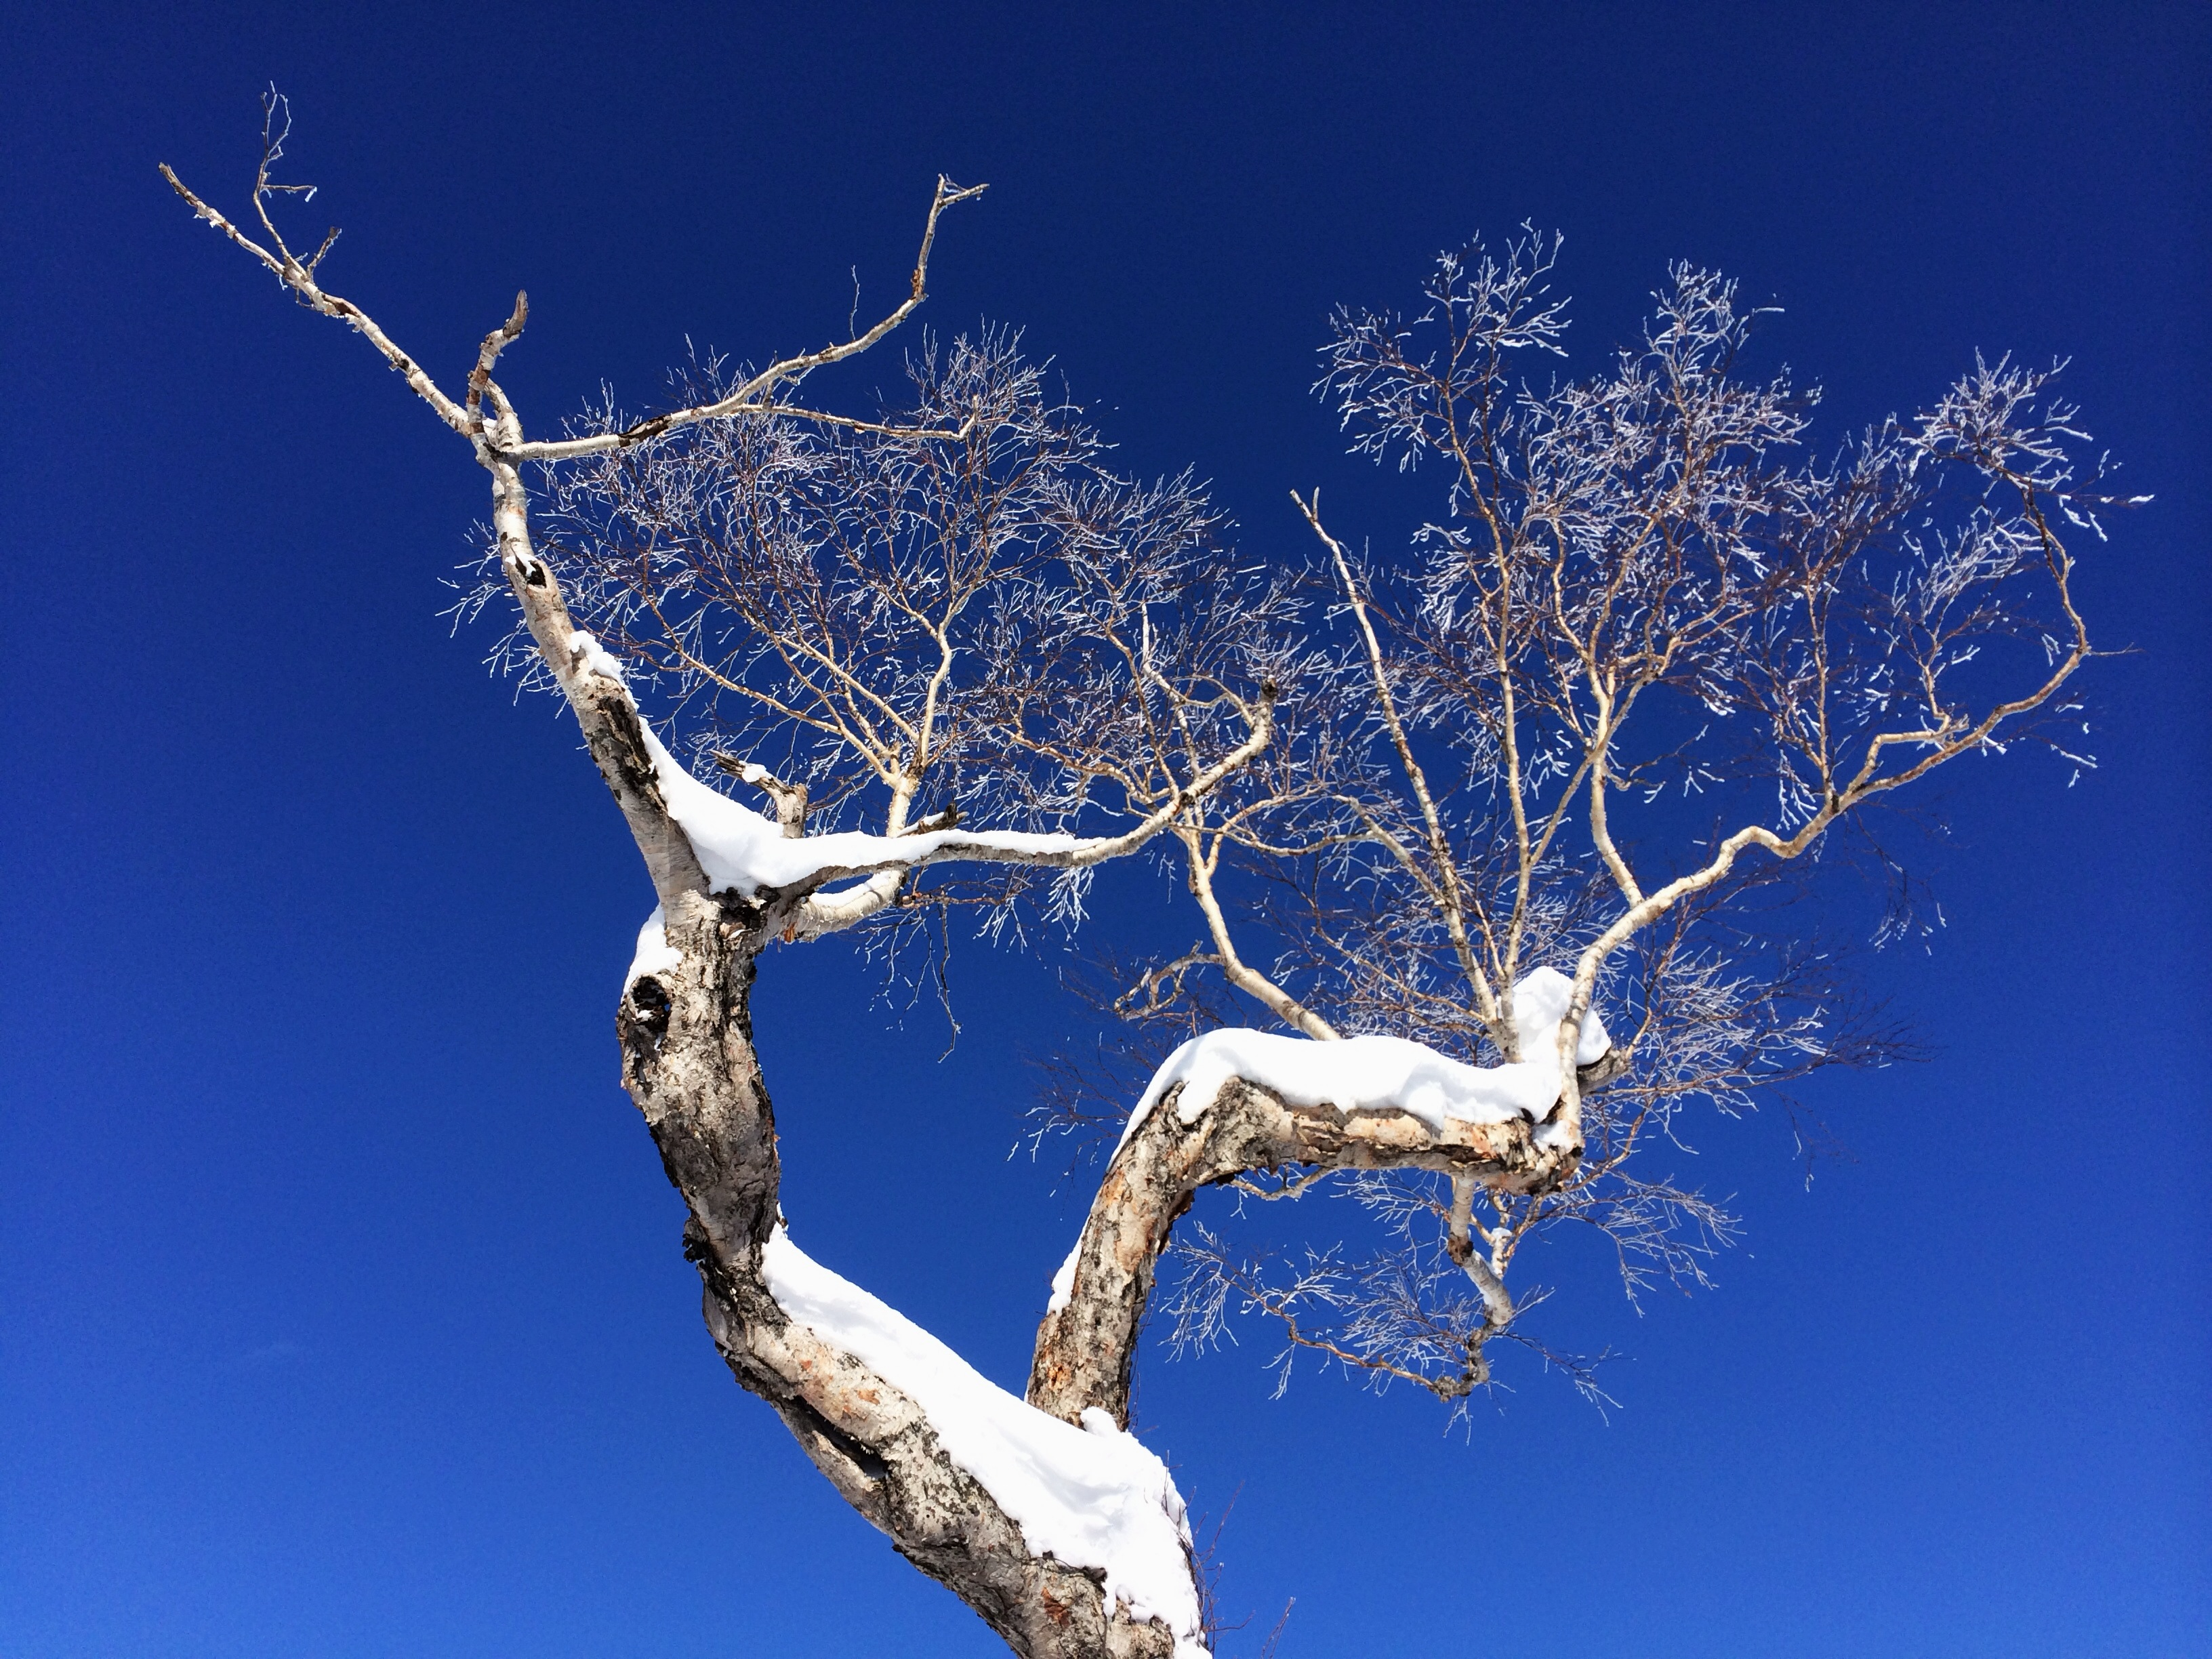 nicolaberry_Snow Tree_Niseko_Japan